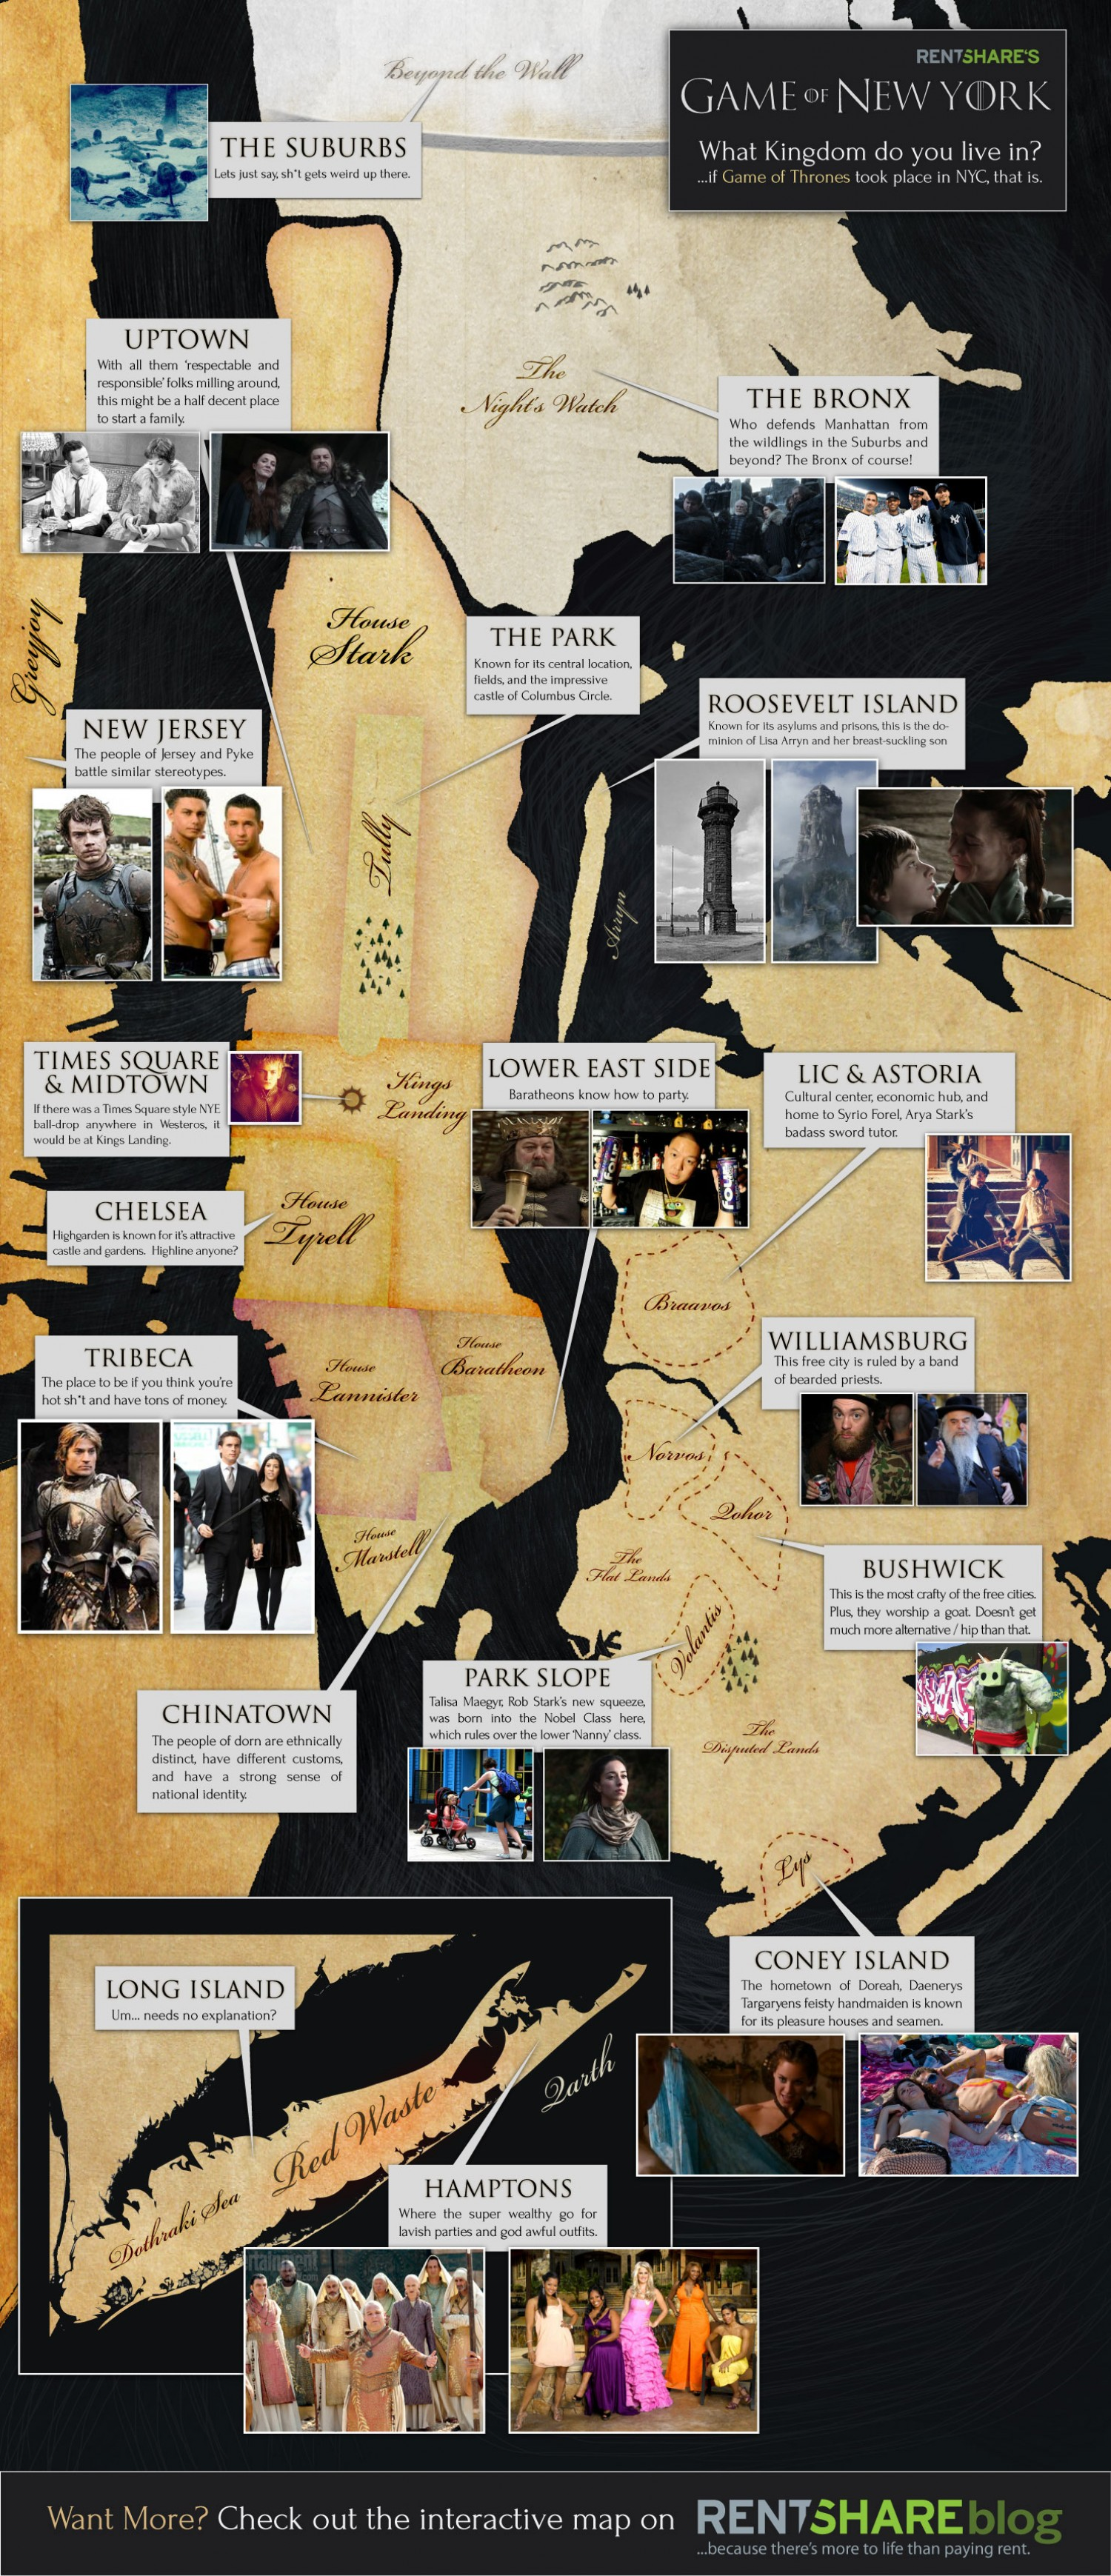 What if Game of Thrones Took Place in NYC?